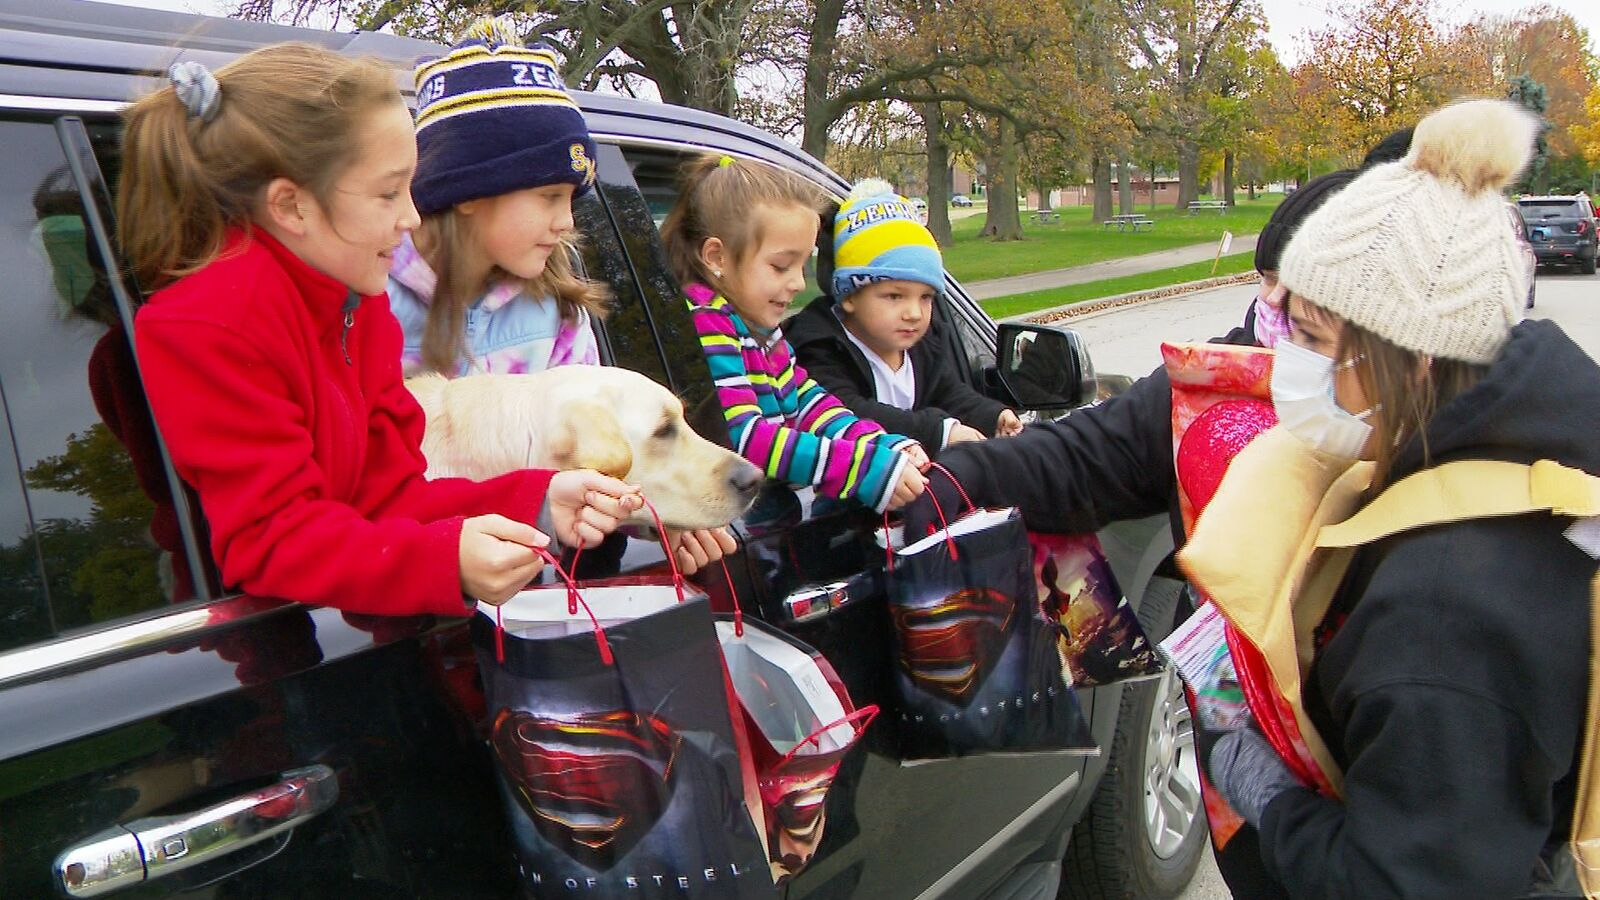 Kids get their bags filled with candy at the Truck or Treat event in Menomonie Park Zoo (courtesy: WLUK)